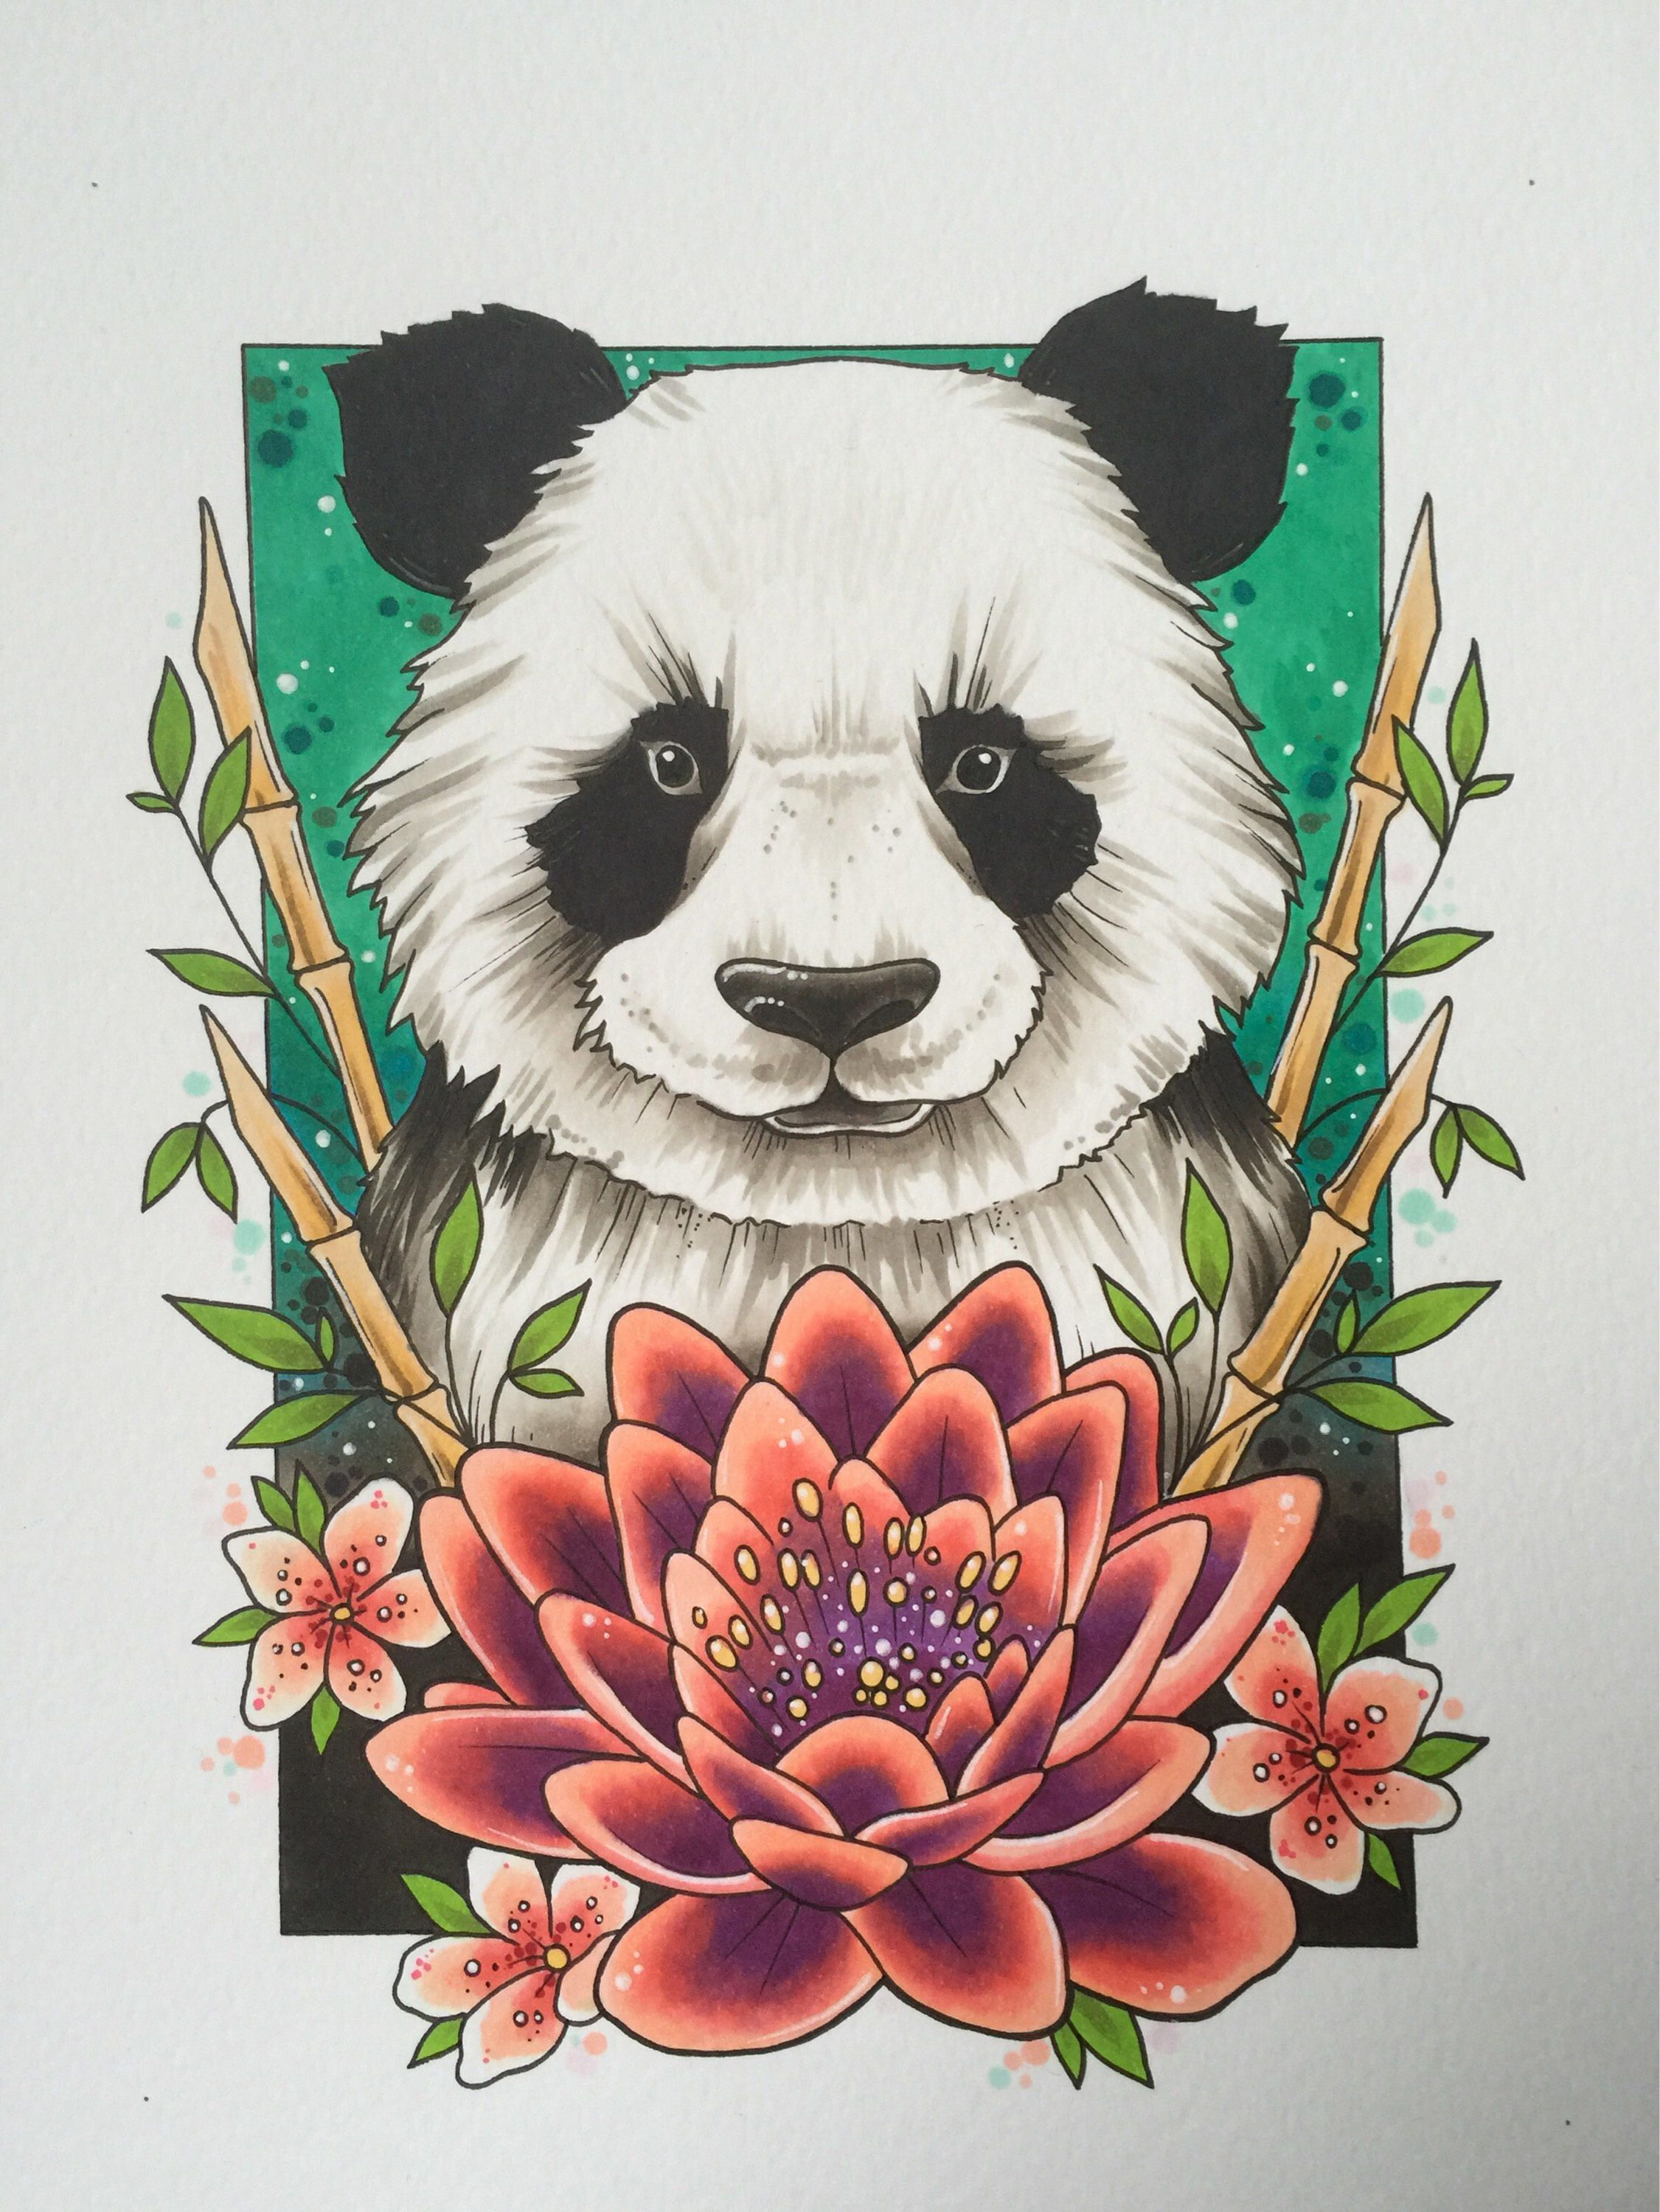 Panda tattoo print, animal art, wildlife art, panda gifts, tattoo design, save the pandas, tattoo gifts, neo traditional, endangered animal